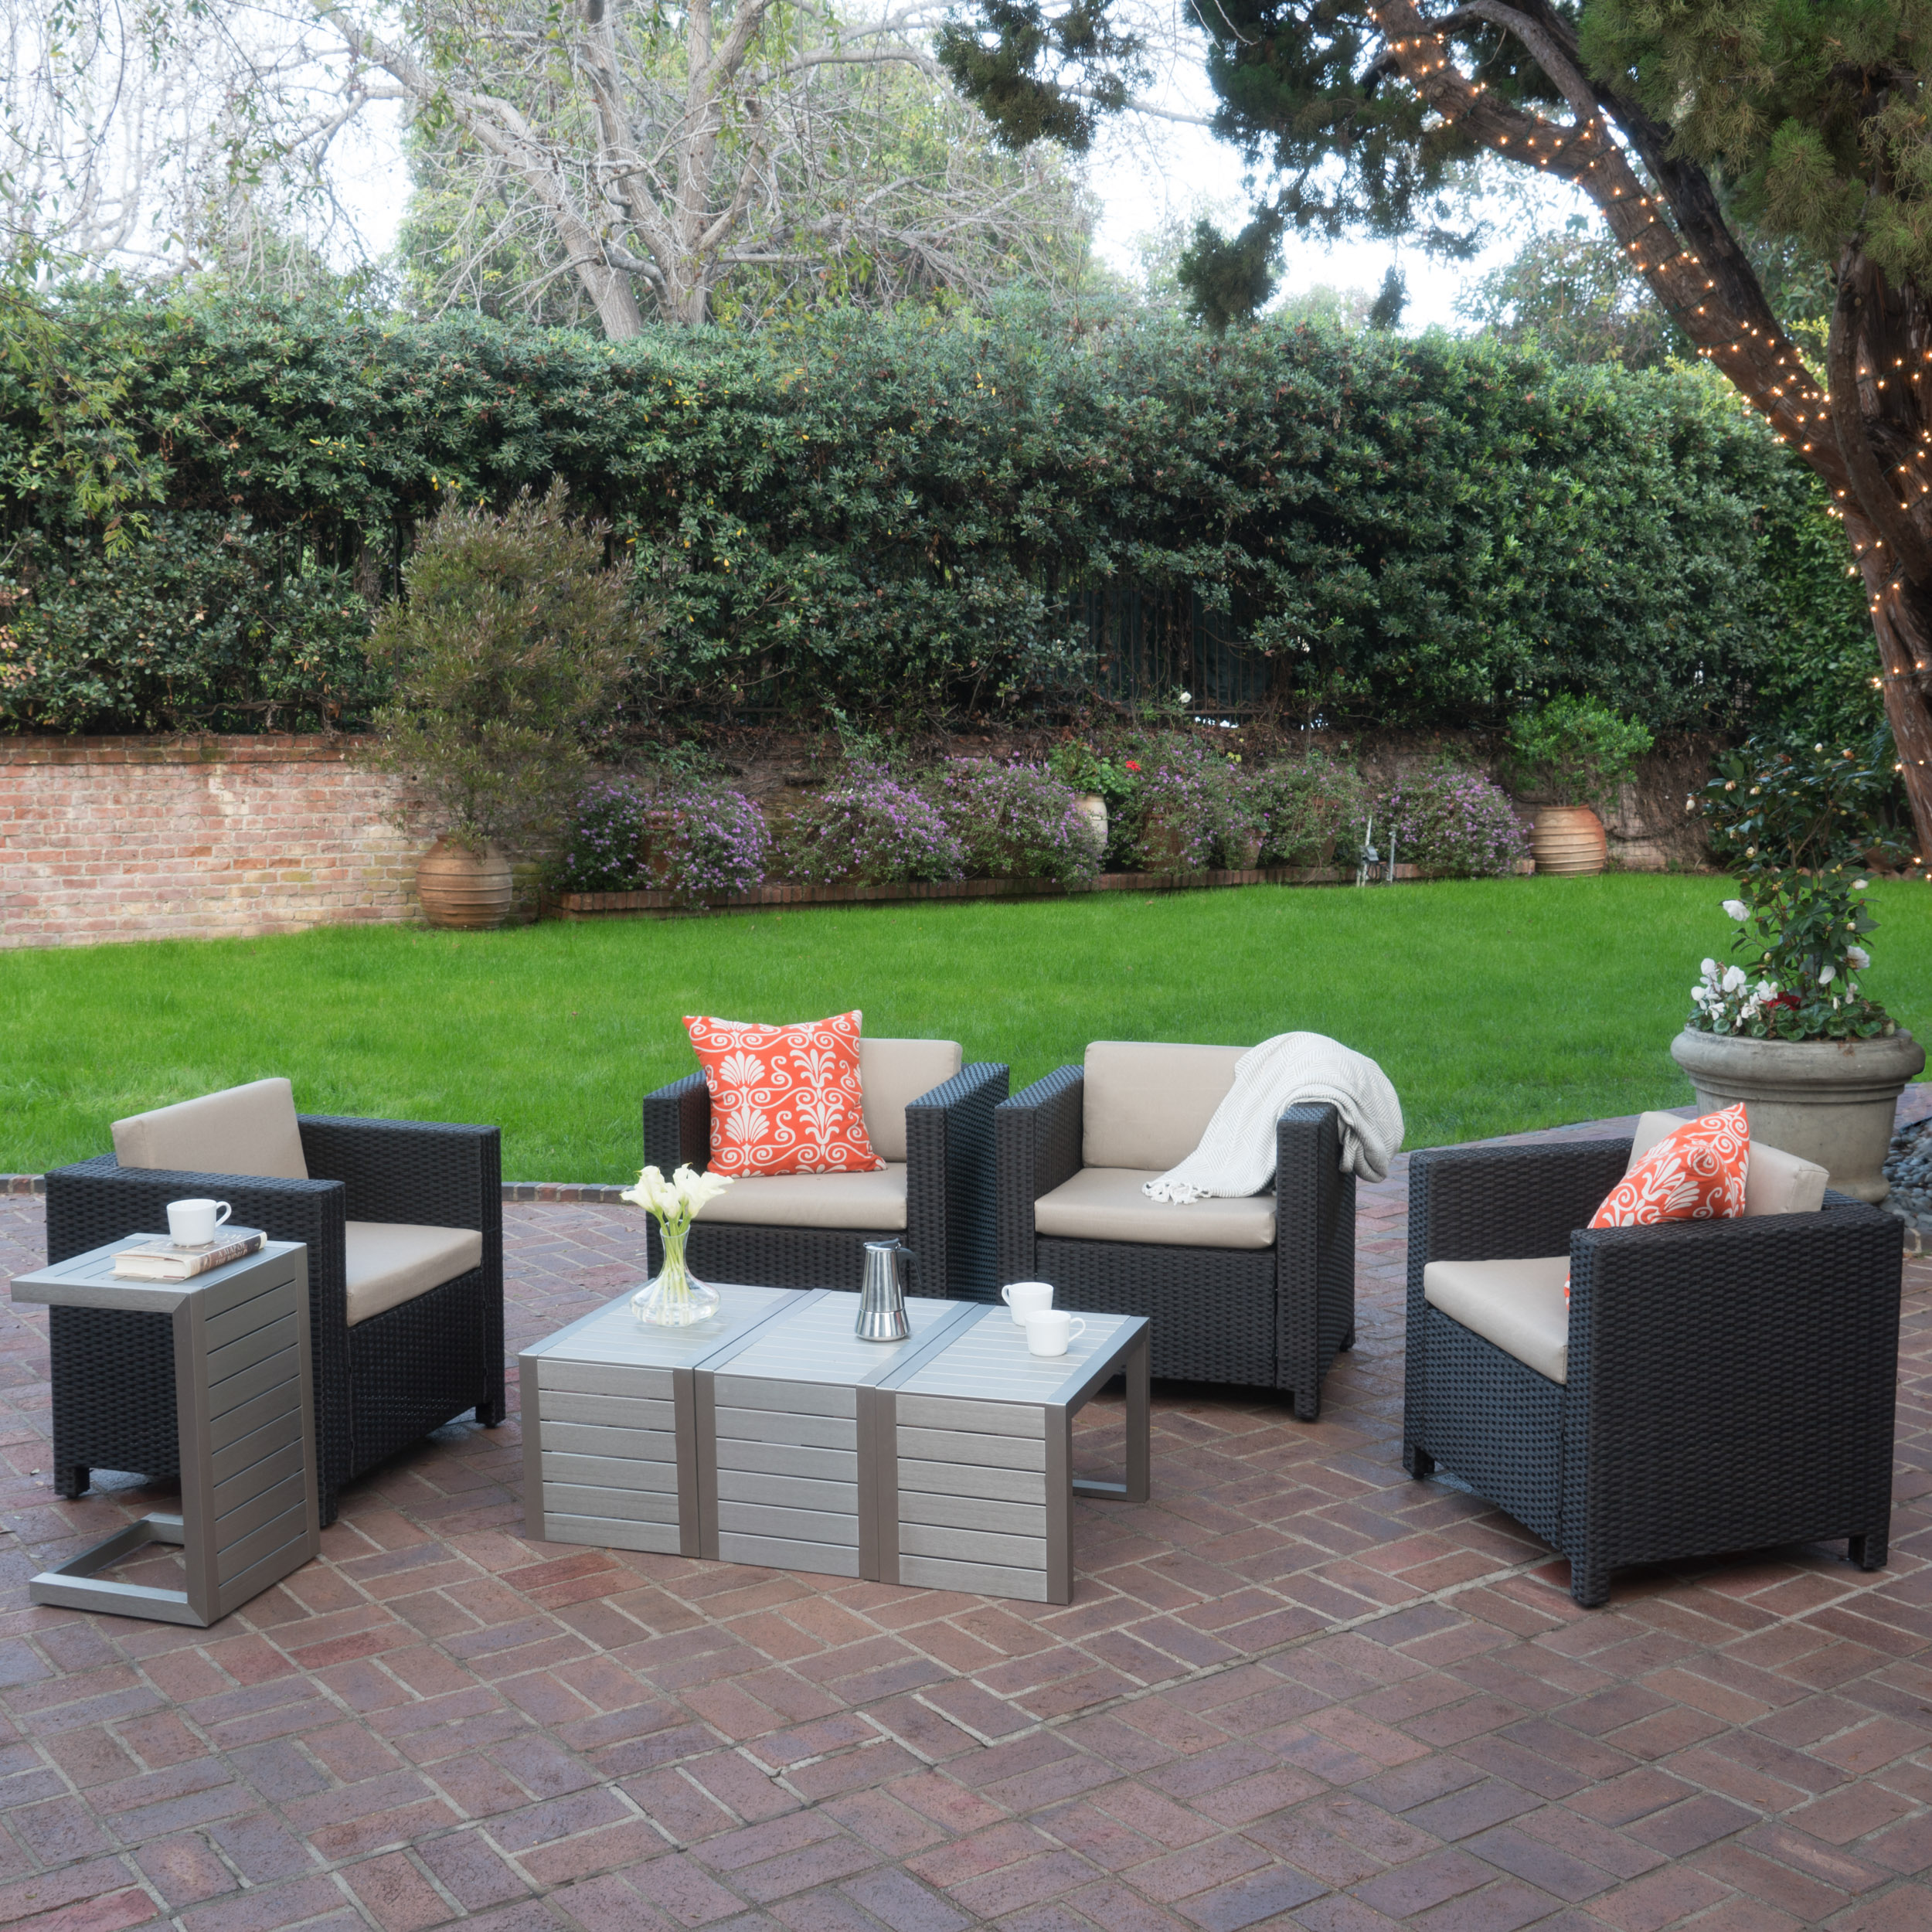 Cascada Outdoor 4 Piece Wicker Club Chairs with Cushions and C-Shaped Tables Set, Silver, Dark Brown, Beige